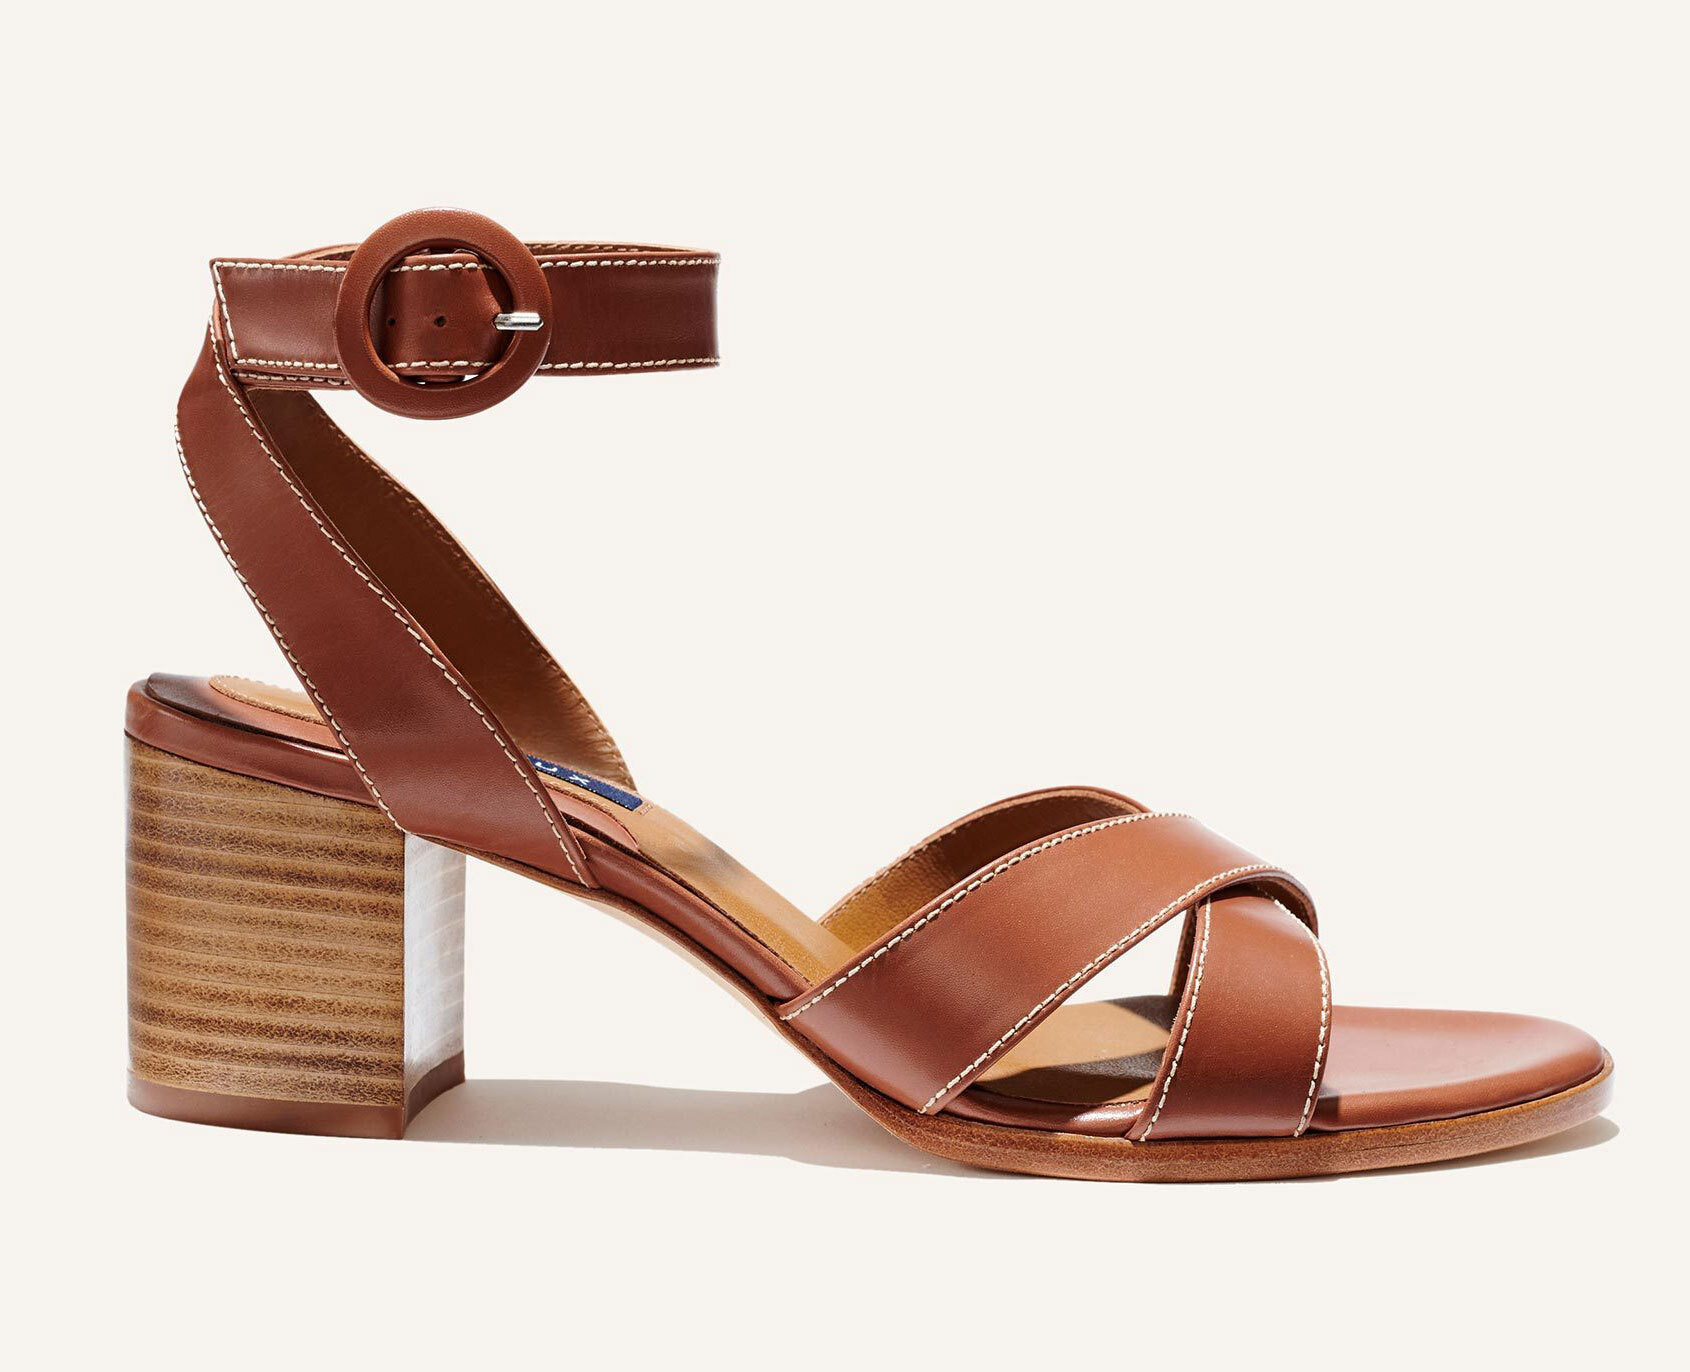 The City Sandal in Saddle Calf